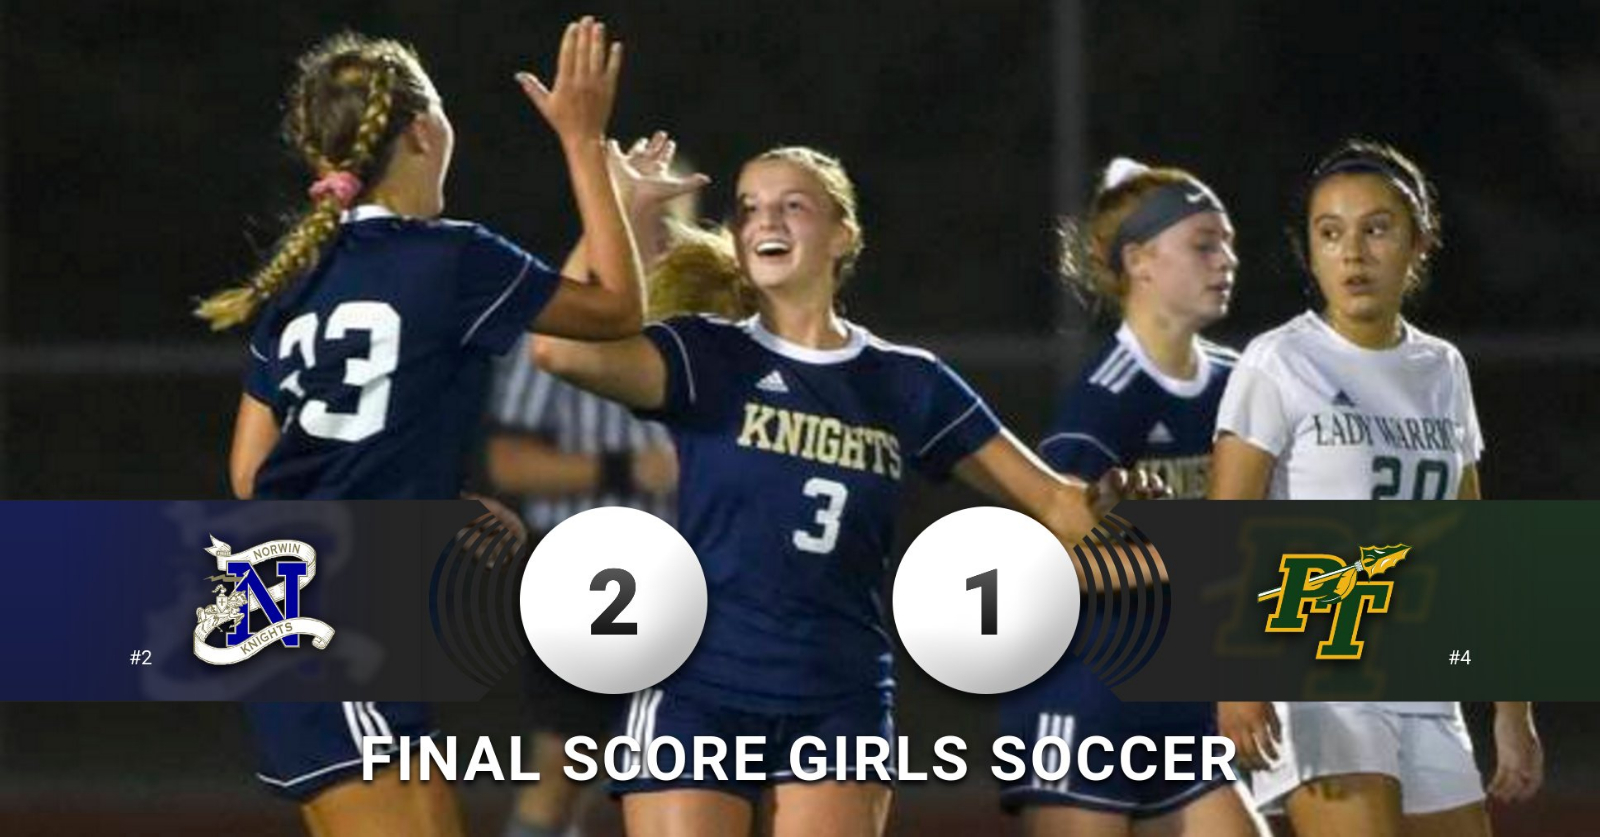 Girls Soccer's Big win over PT Featured in the Trib HSSN!